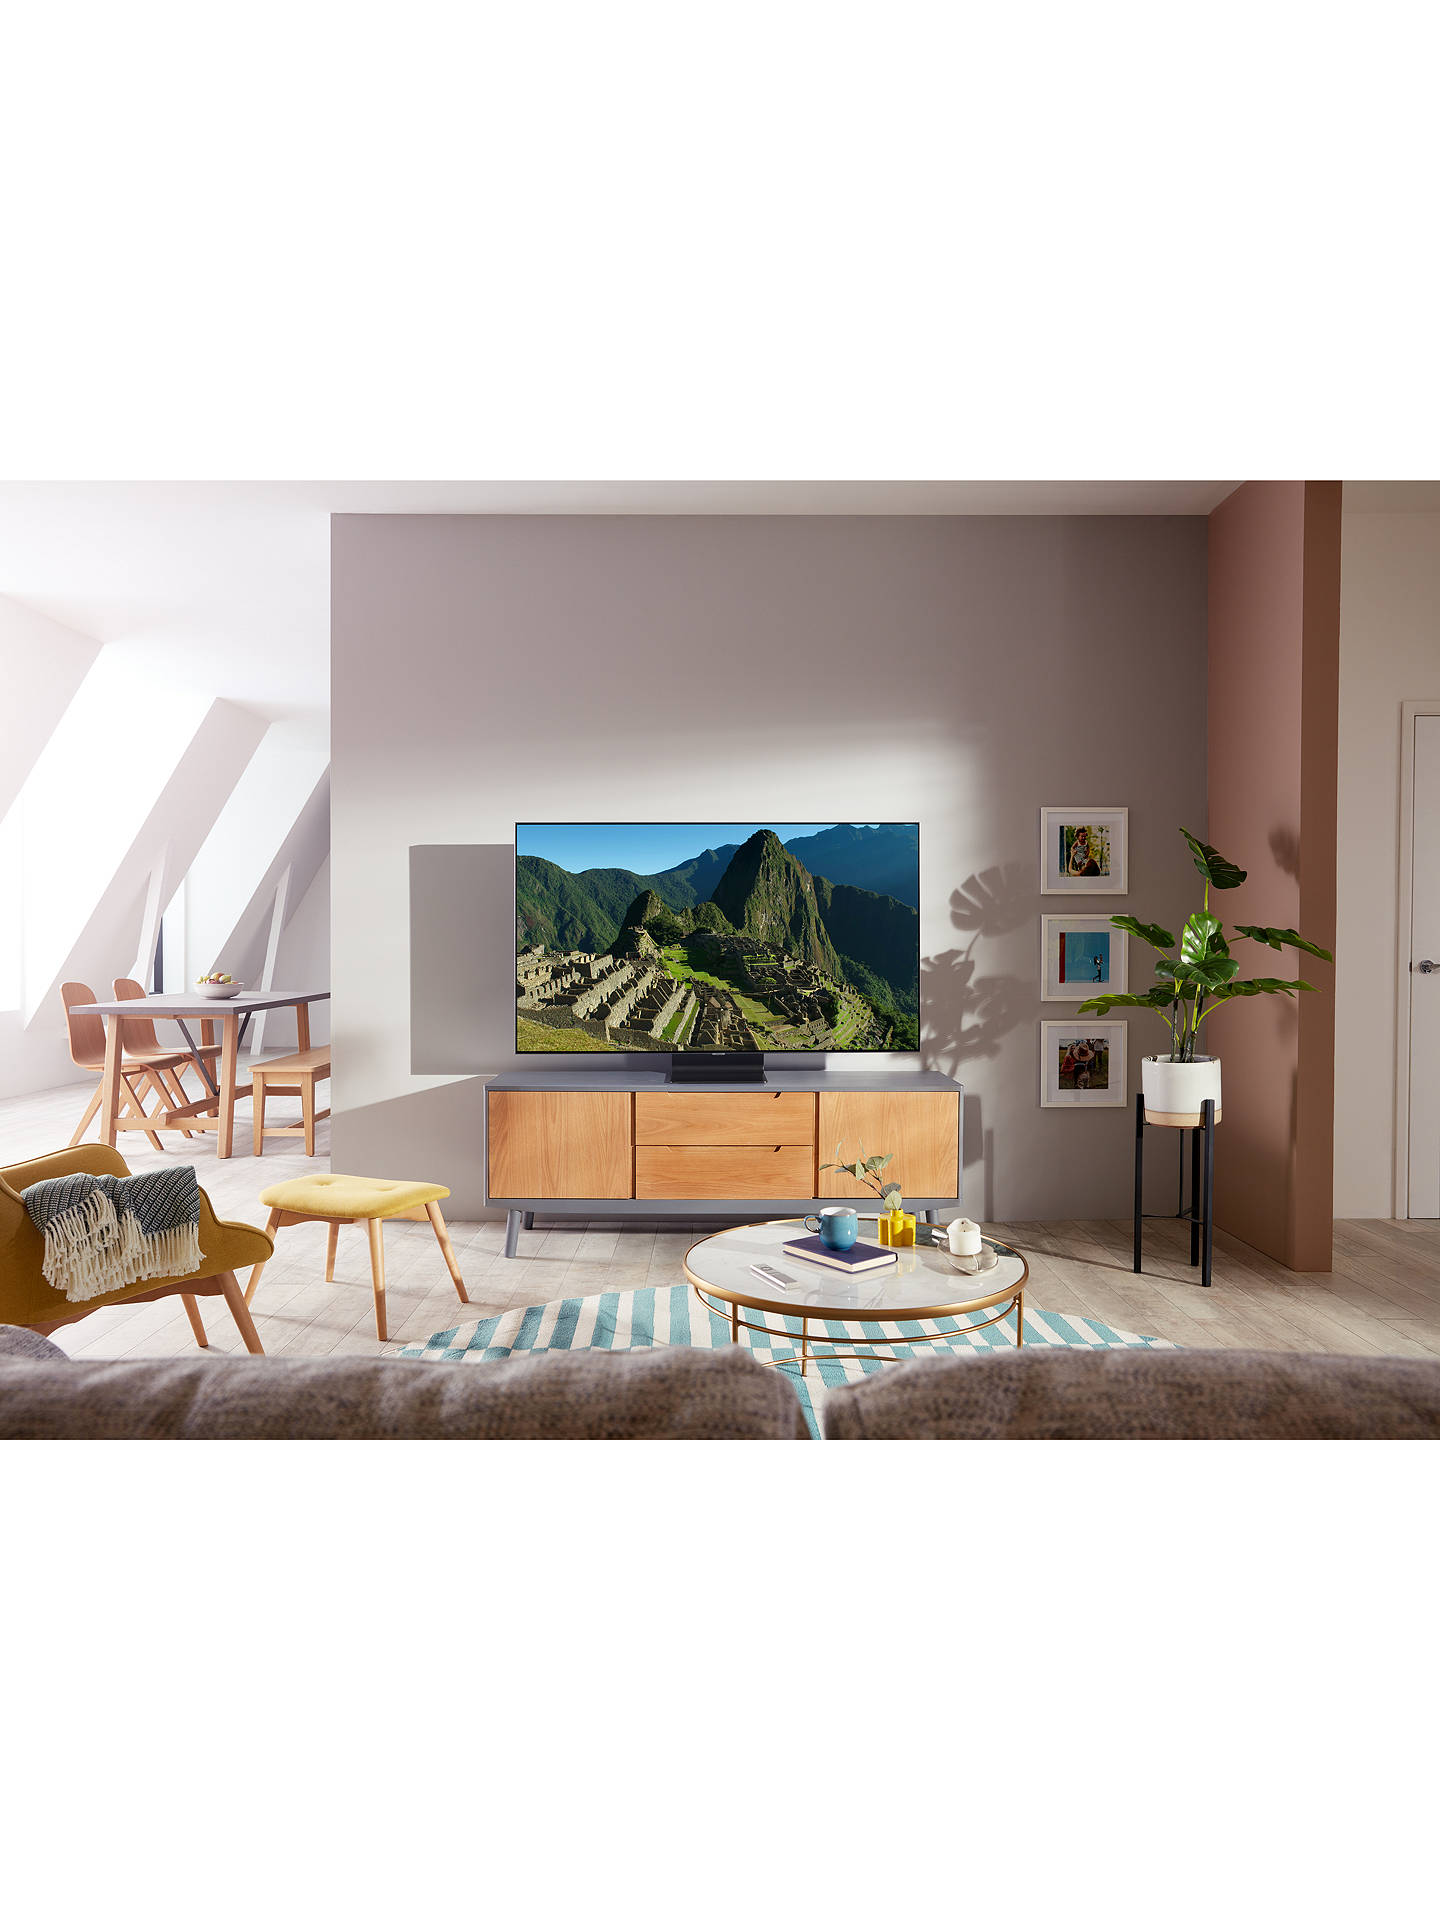 Buy Samsung QE55Q95T (2020) QLED HDR 2000 4K Ultra HD Smart TV, 55 inch with TVPlus/Freesat HD, Black Online at johnlewis.com